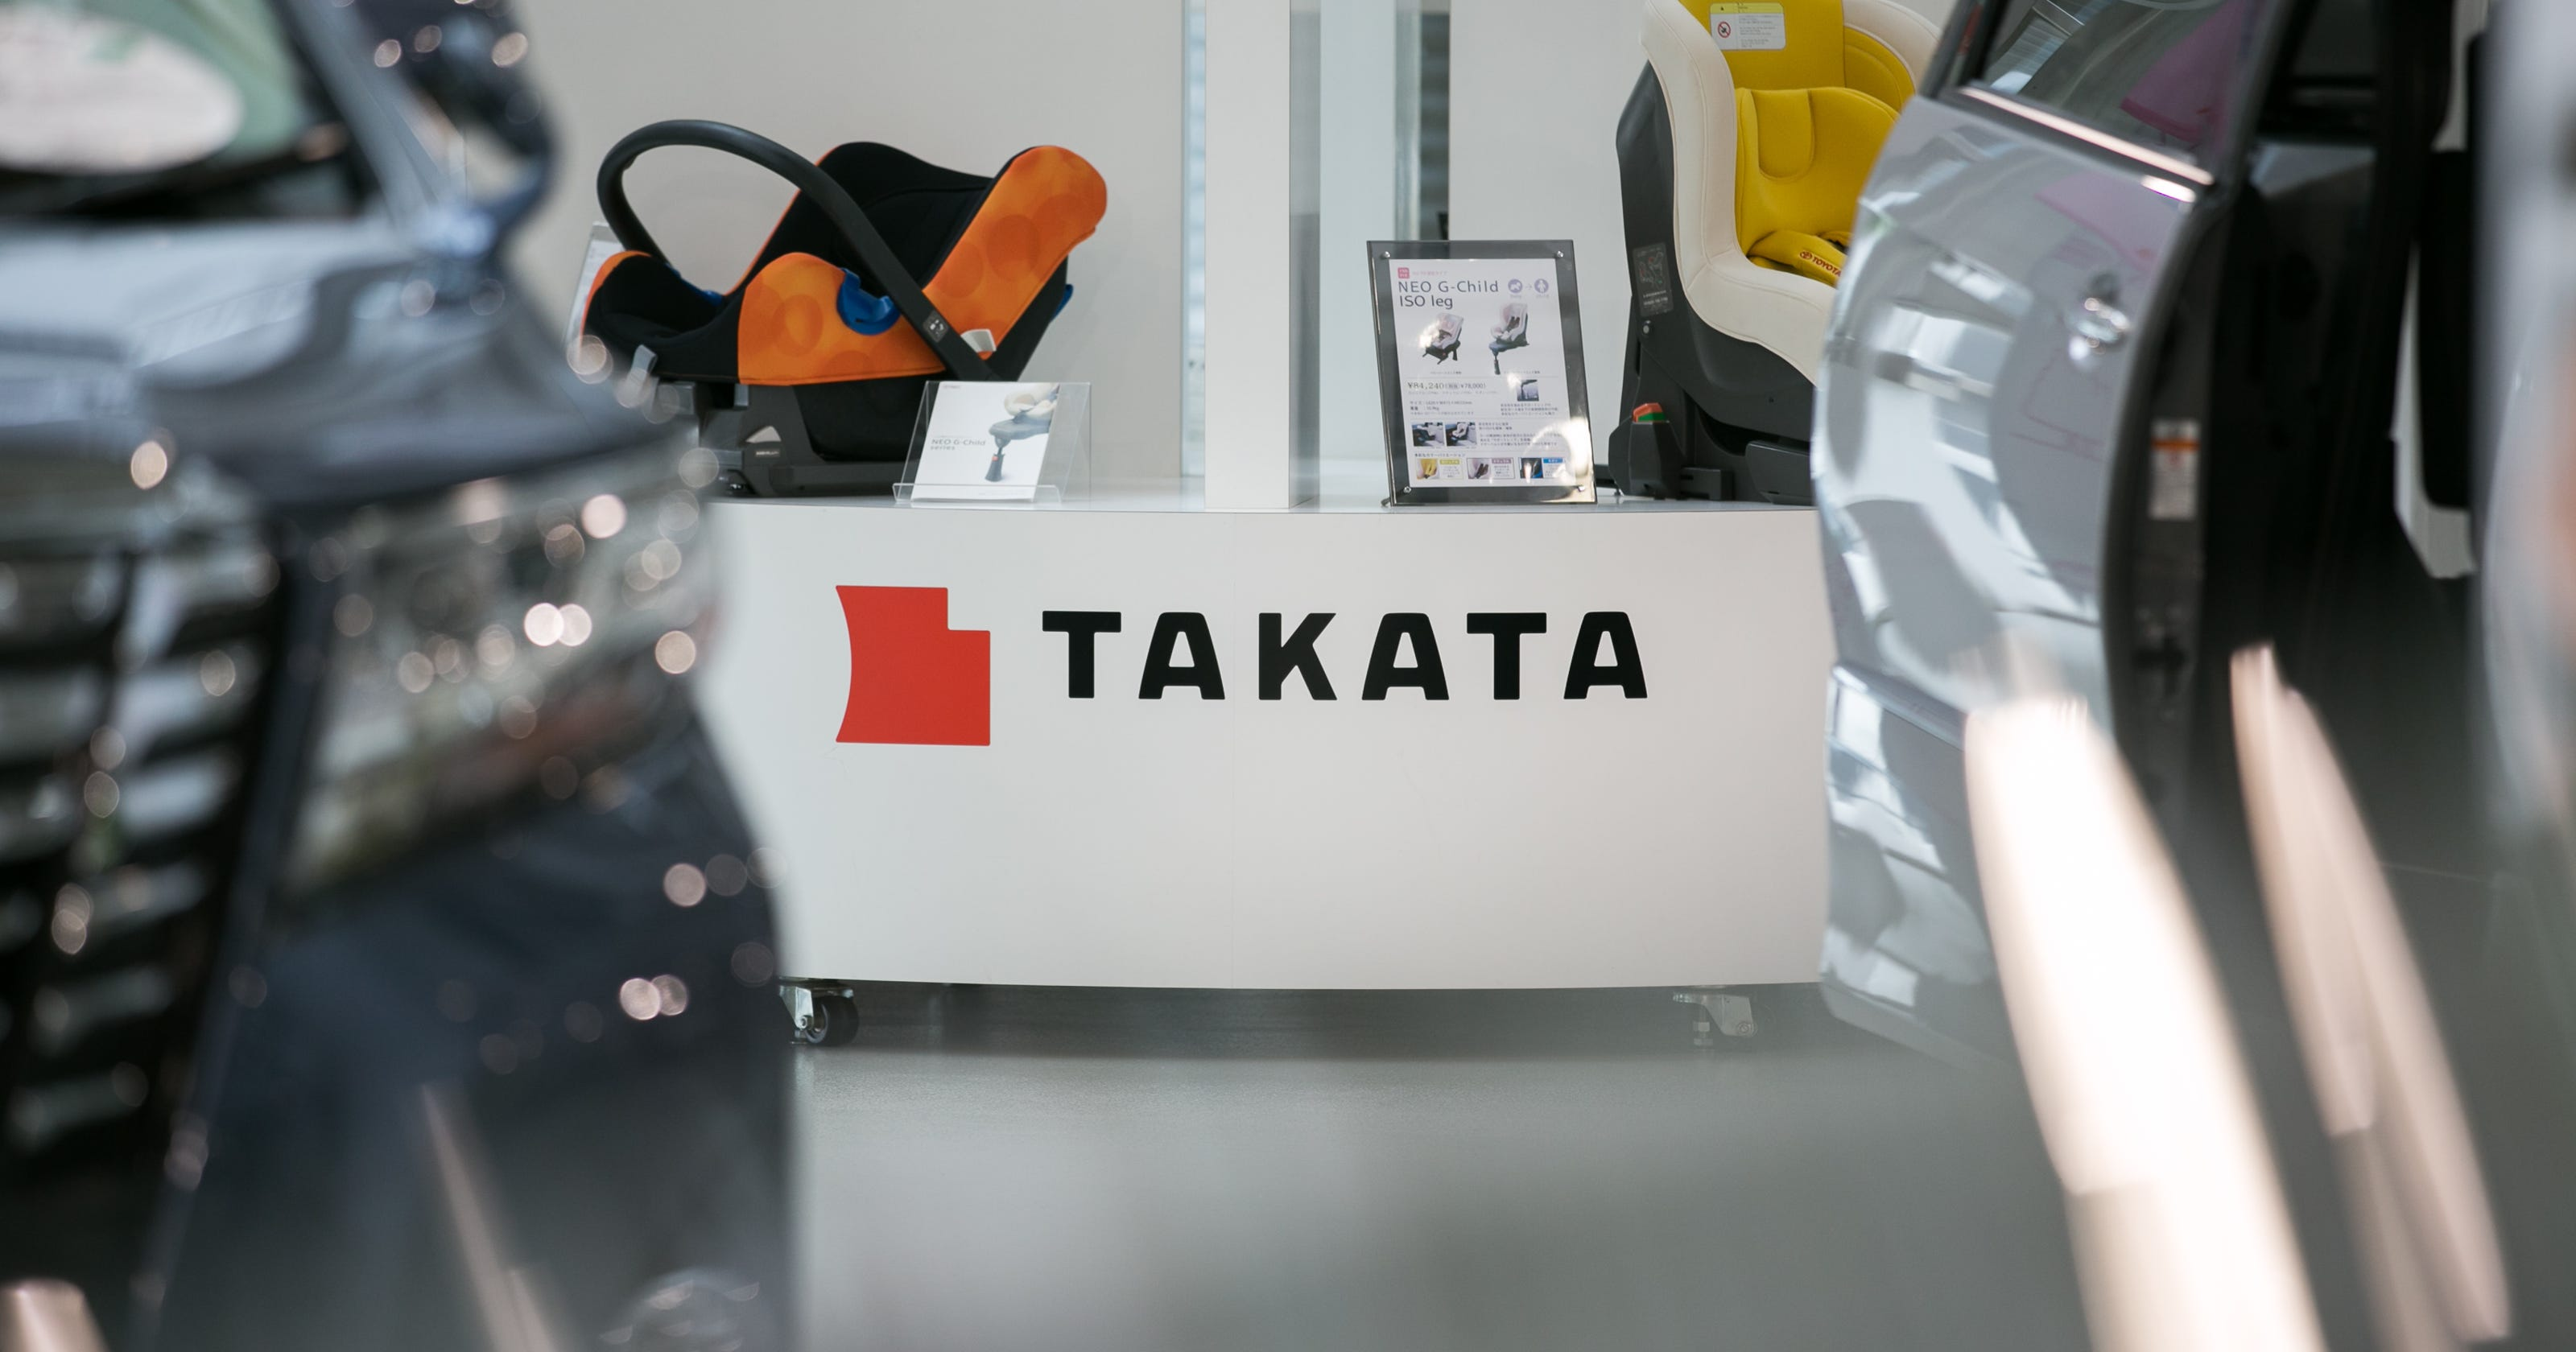 Honda owners to get up to $500 in Takata air bag deal